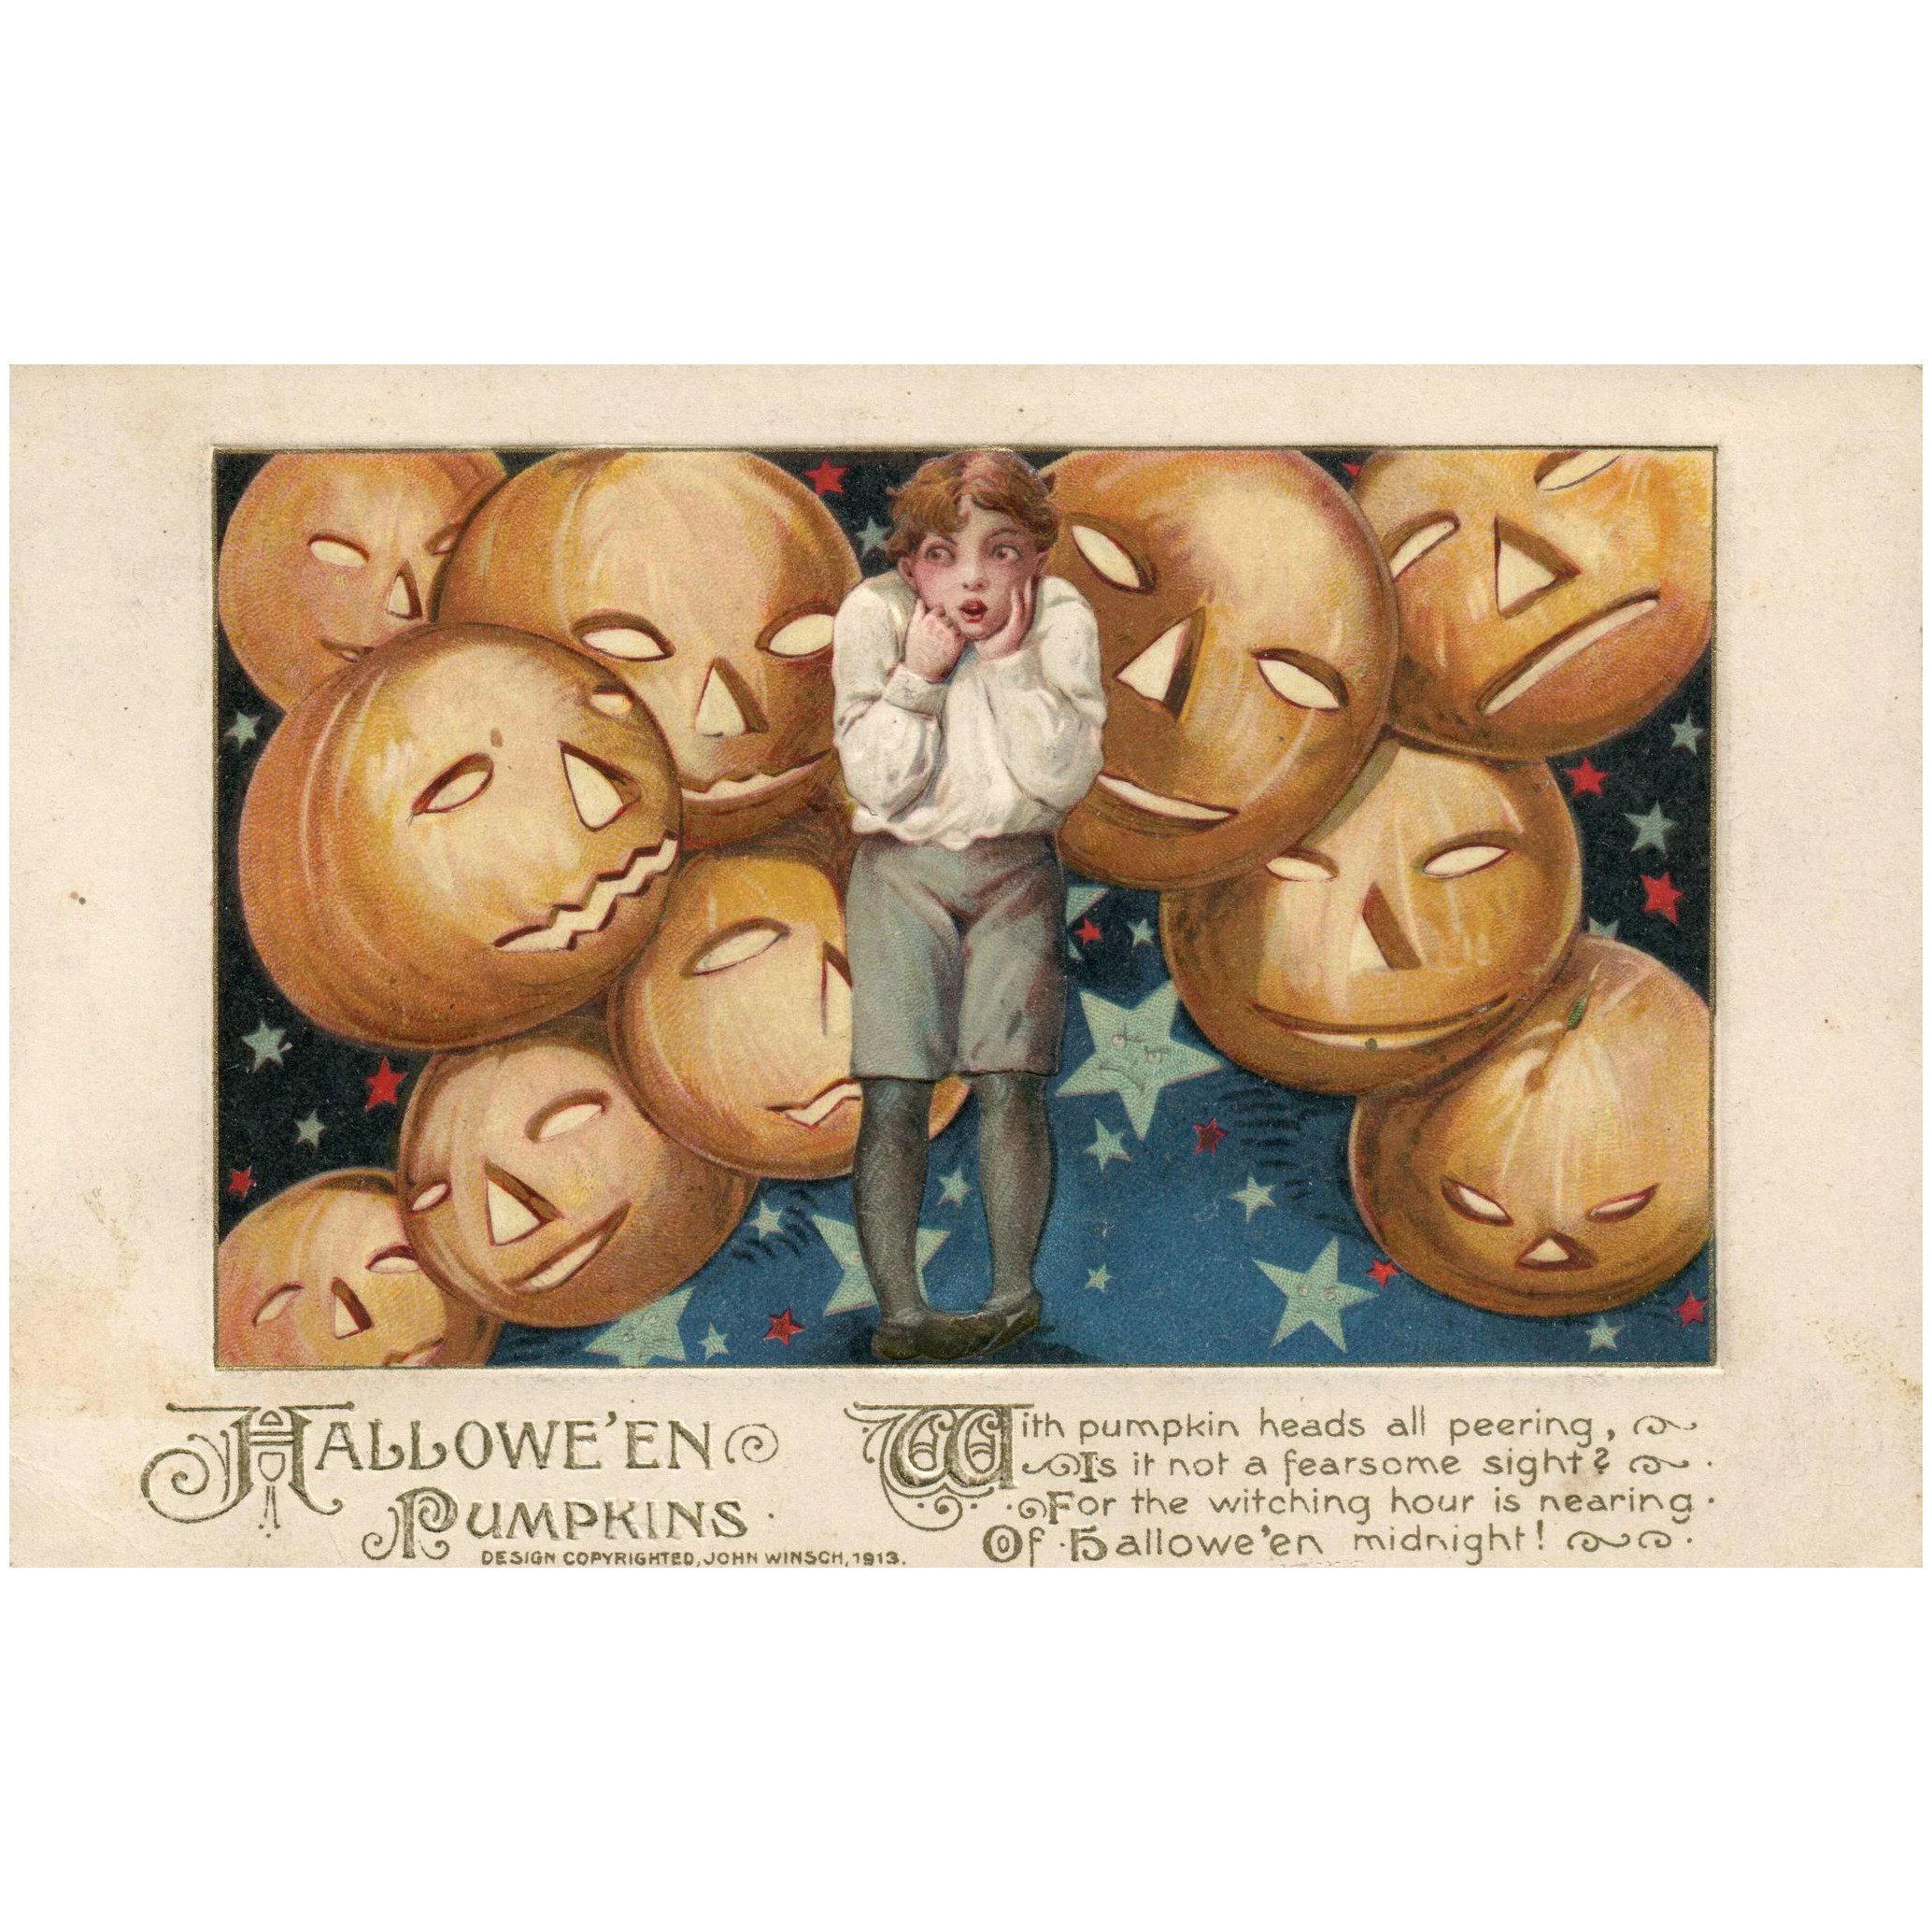 Halloween Schmuck 1913 John Winsch Samuel Schmucker Halloween Boy With Jack